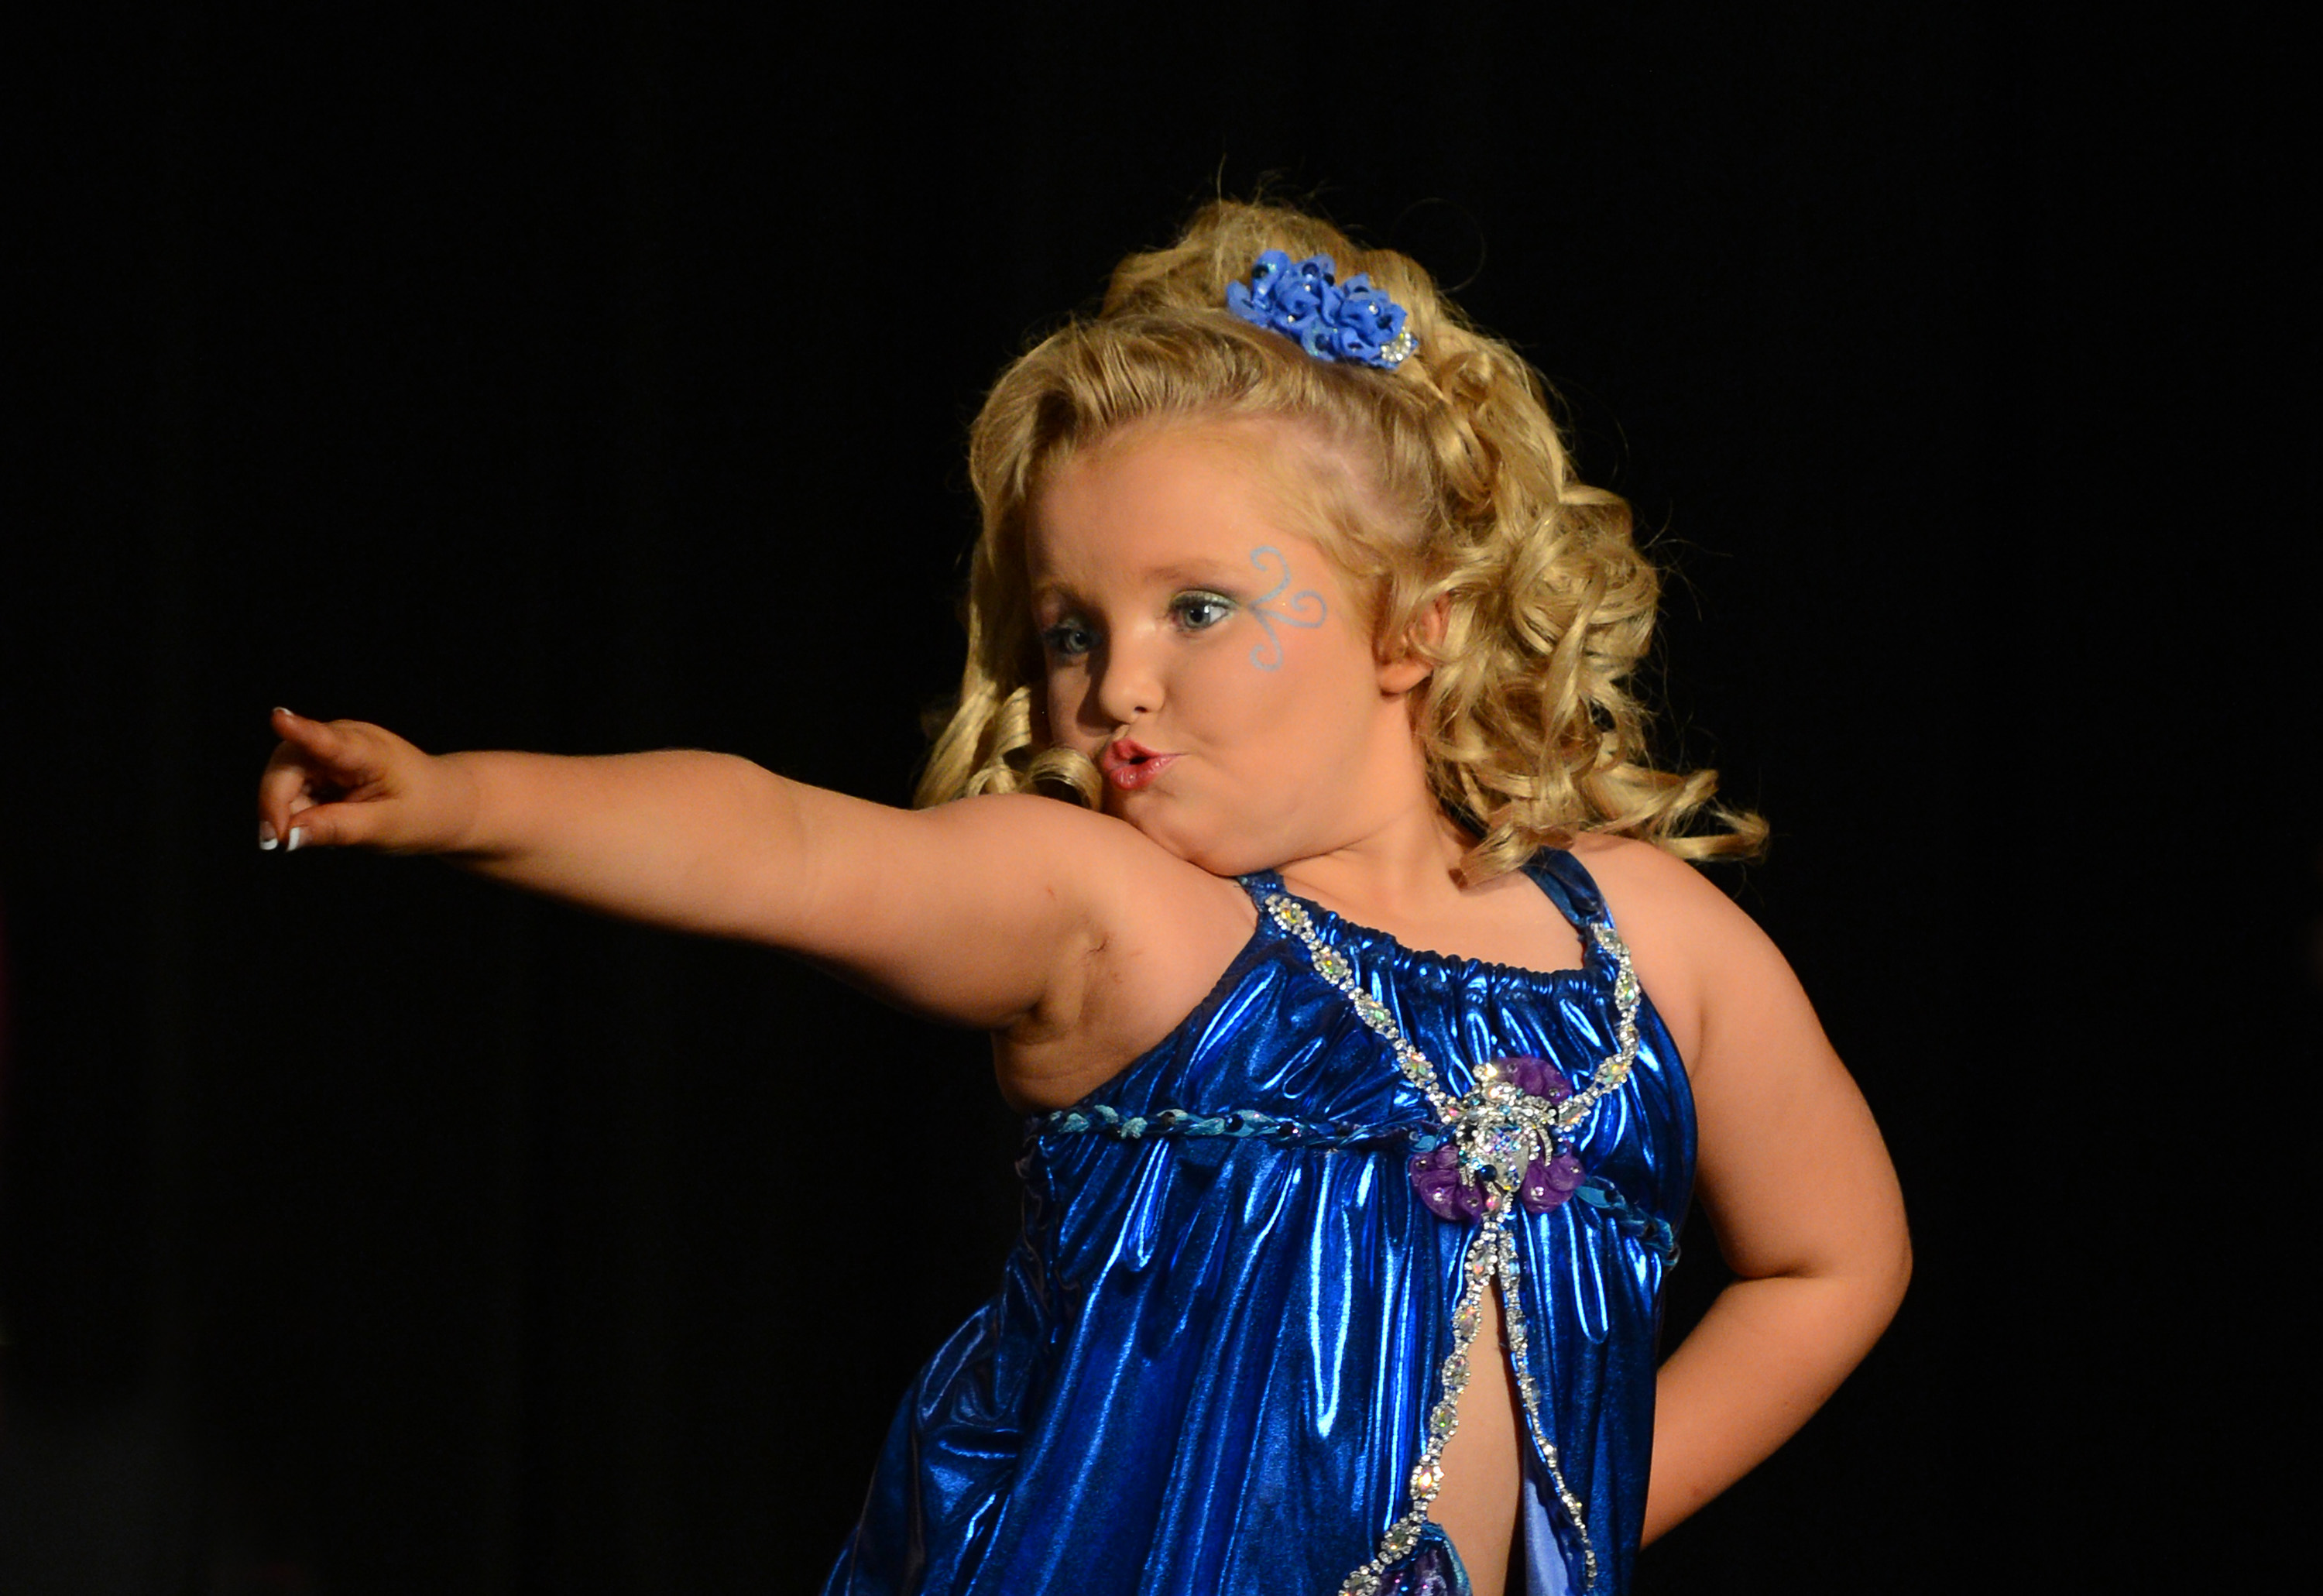 Dew mountain honey boo boo